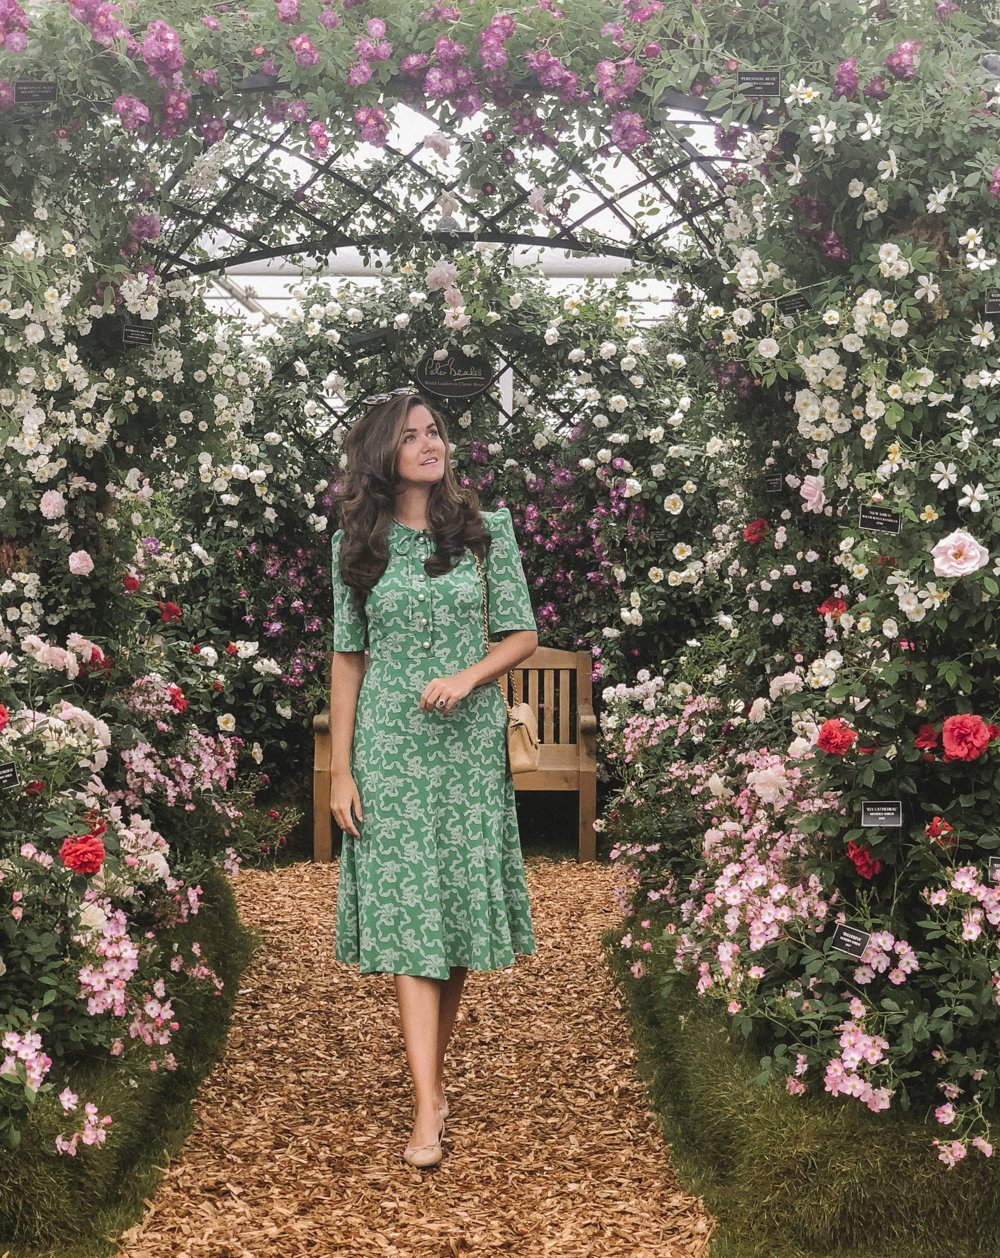 Postcards From Chelsea Flower Show